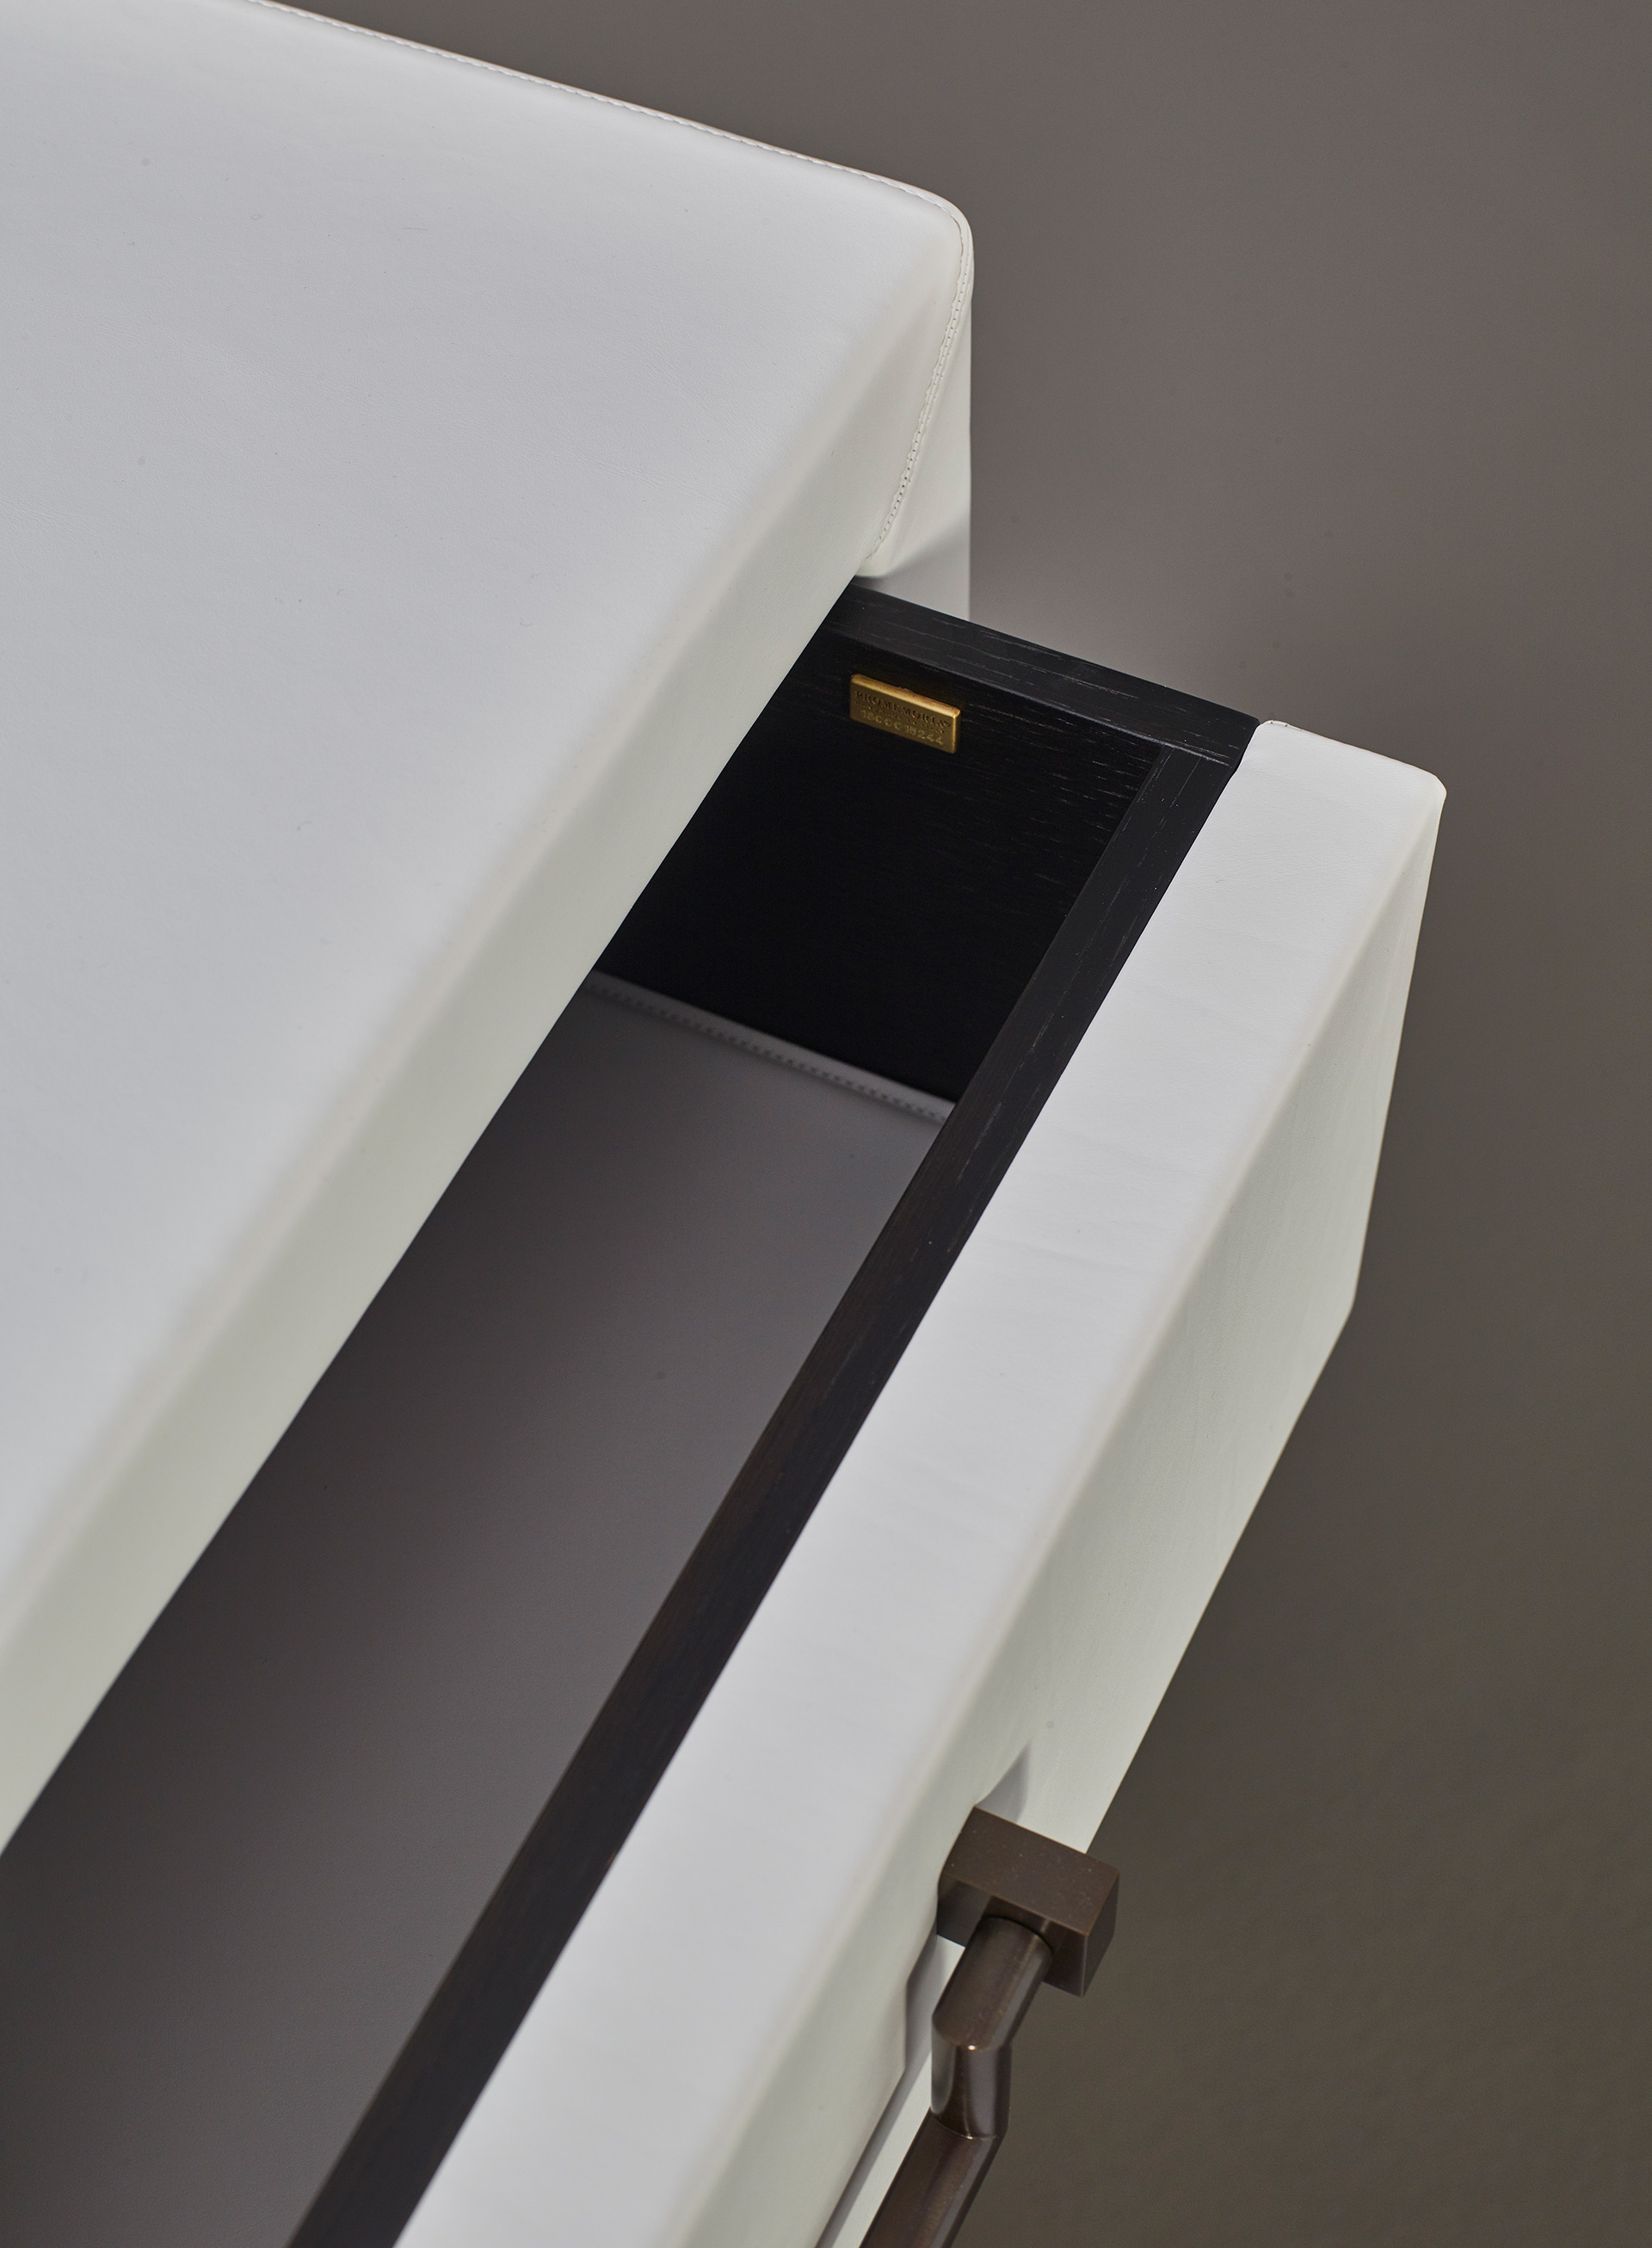 Drawer detail of Future, a wooden chest of drawers covered in leather or fabric with leather placemats and handles in leather or bronze, nickel and chrome from Promemoria's catalogue | Promemoria